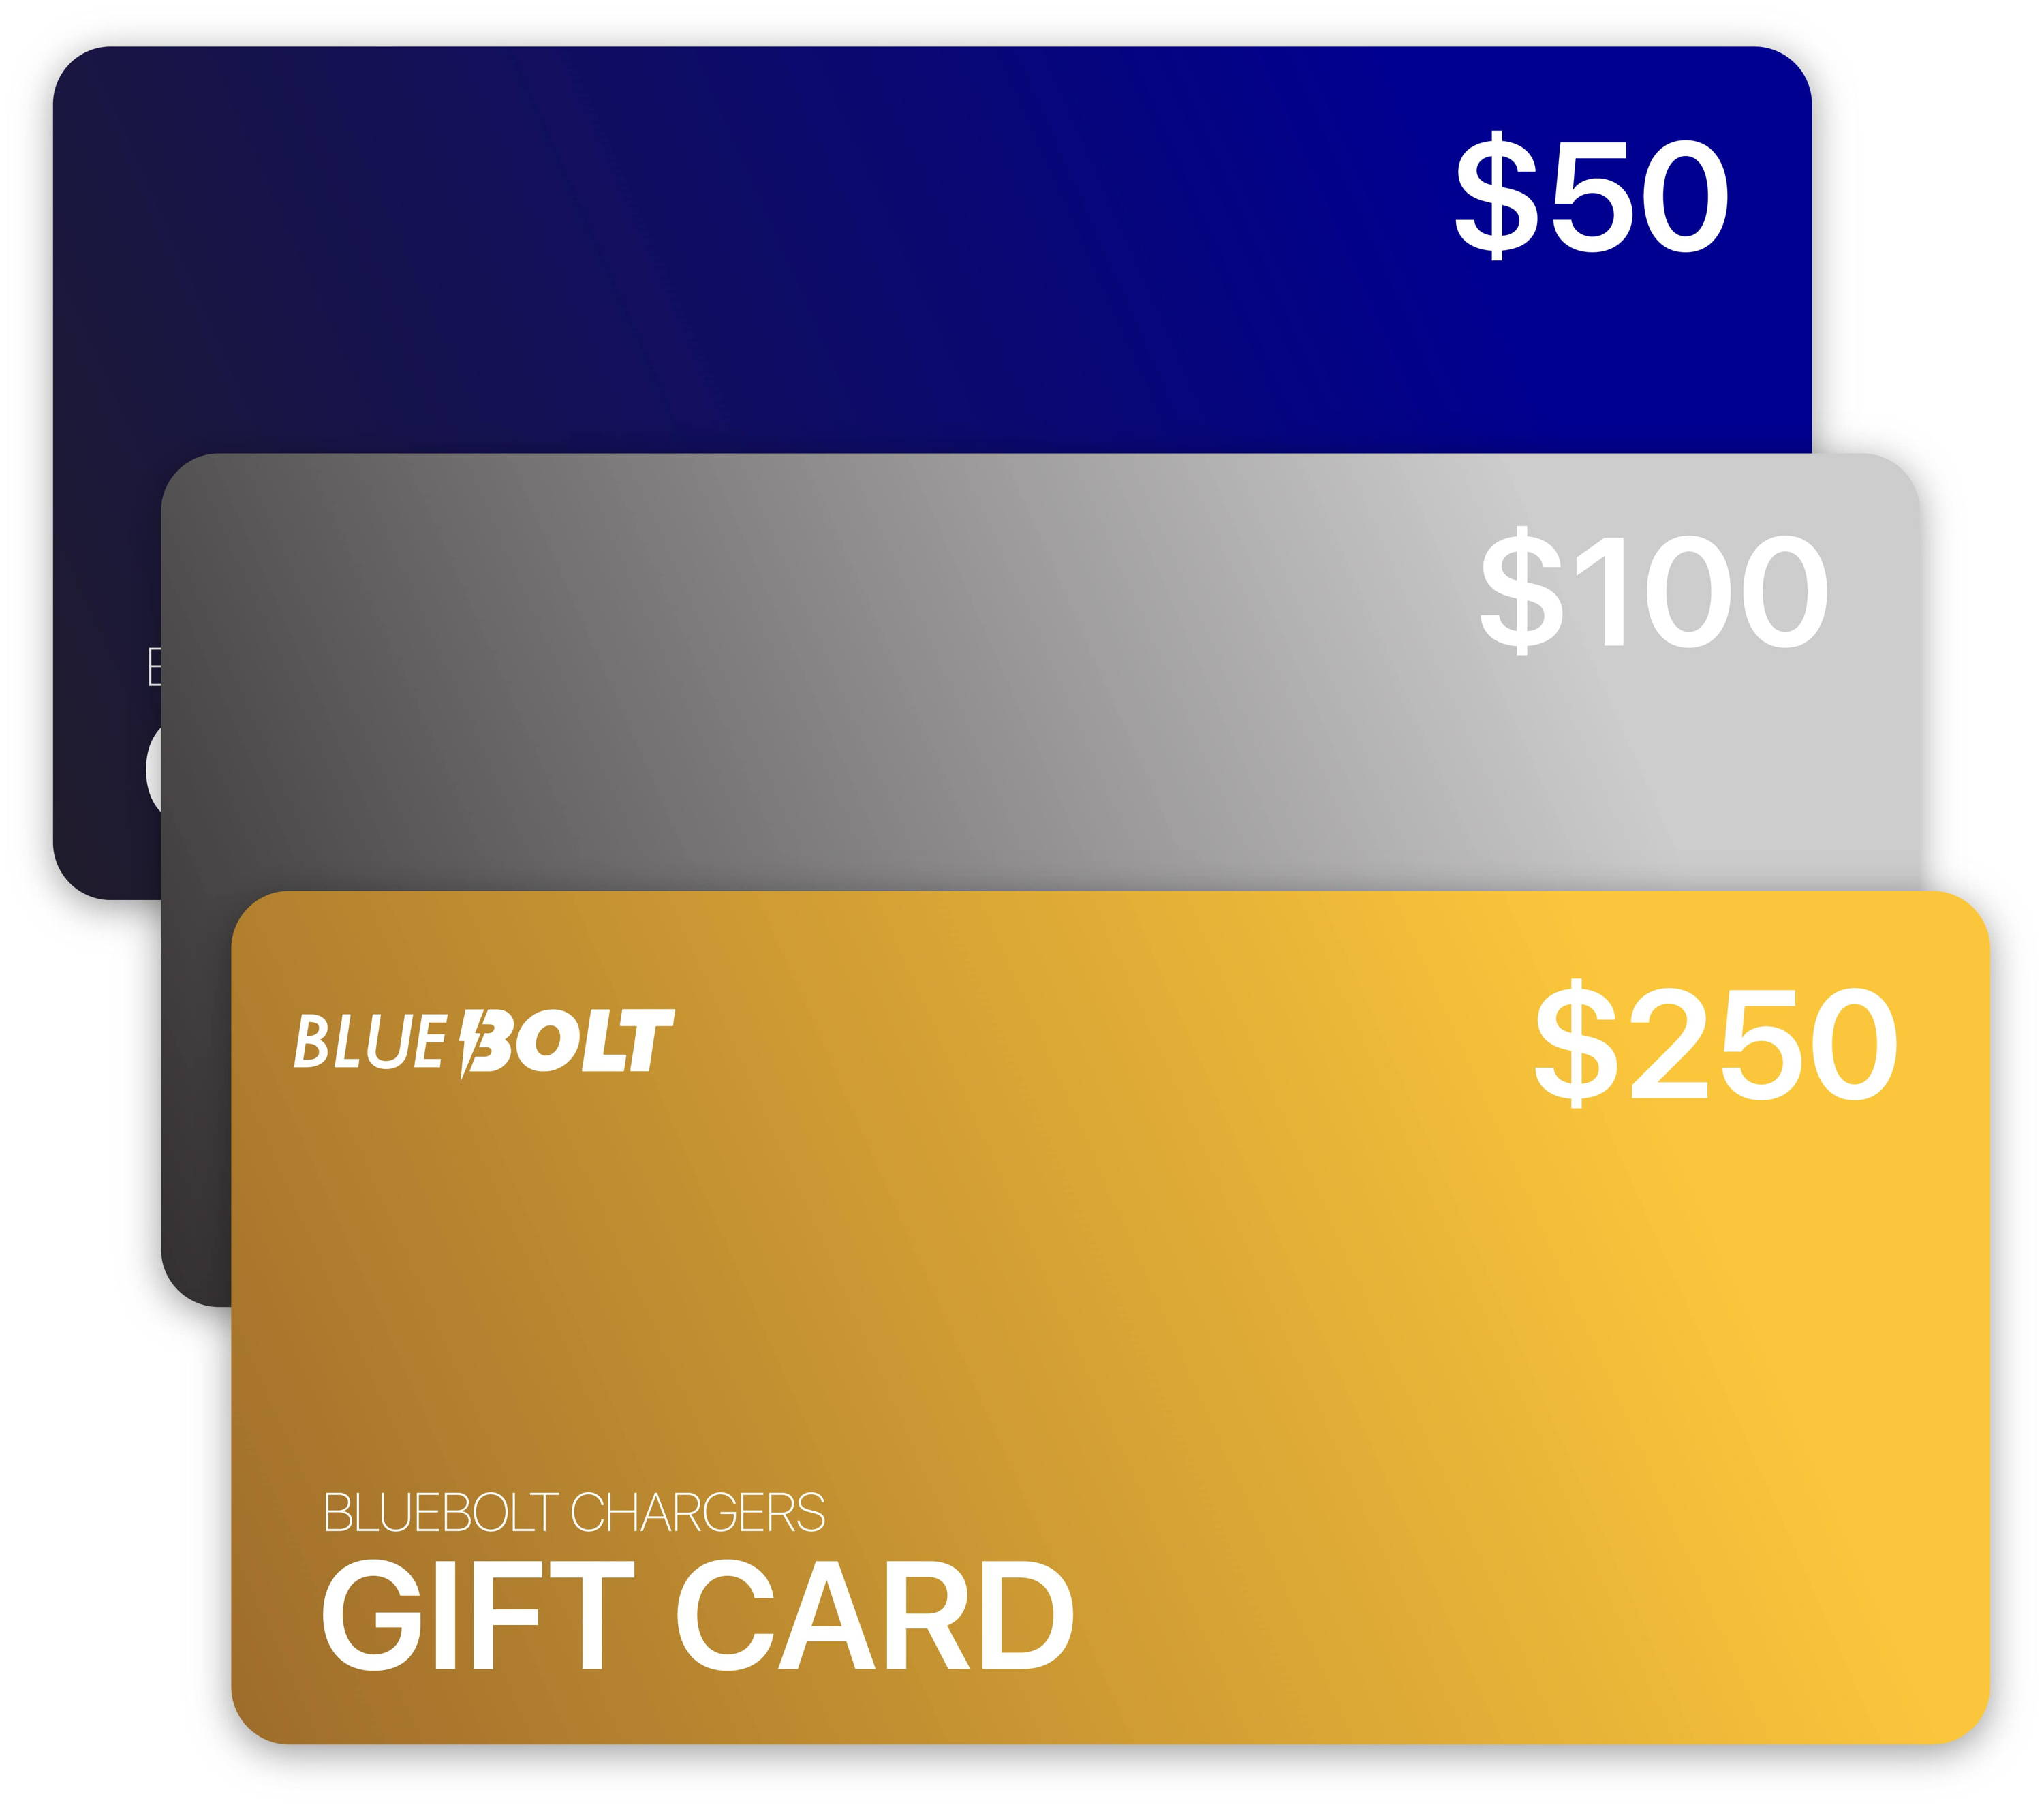 bluebolt chargers gift cards